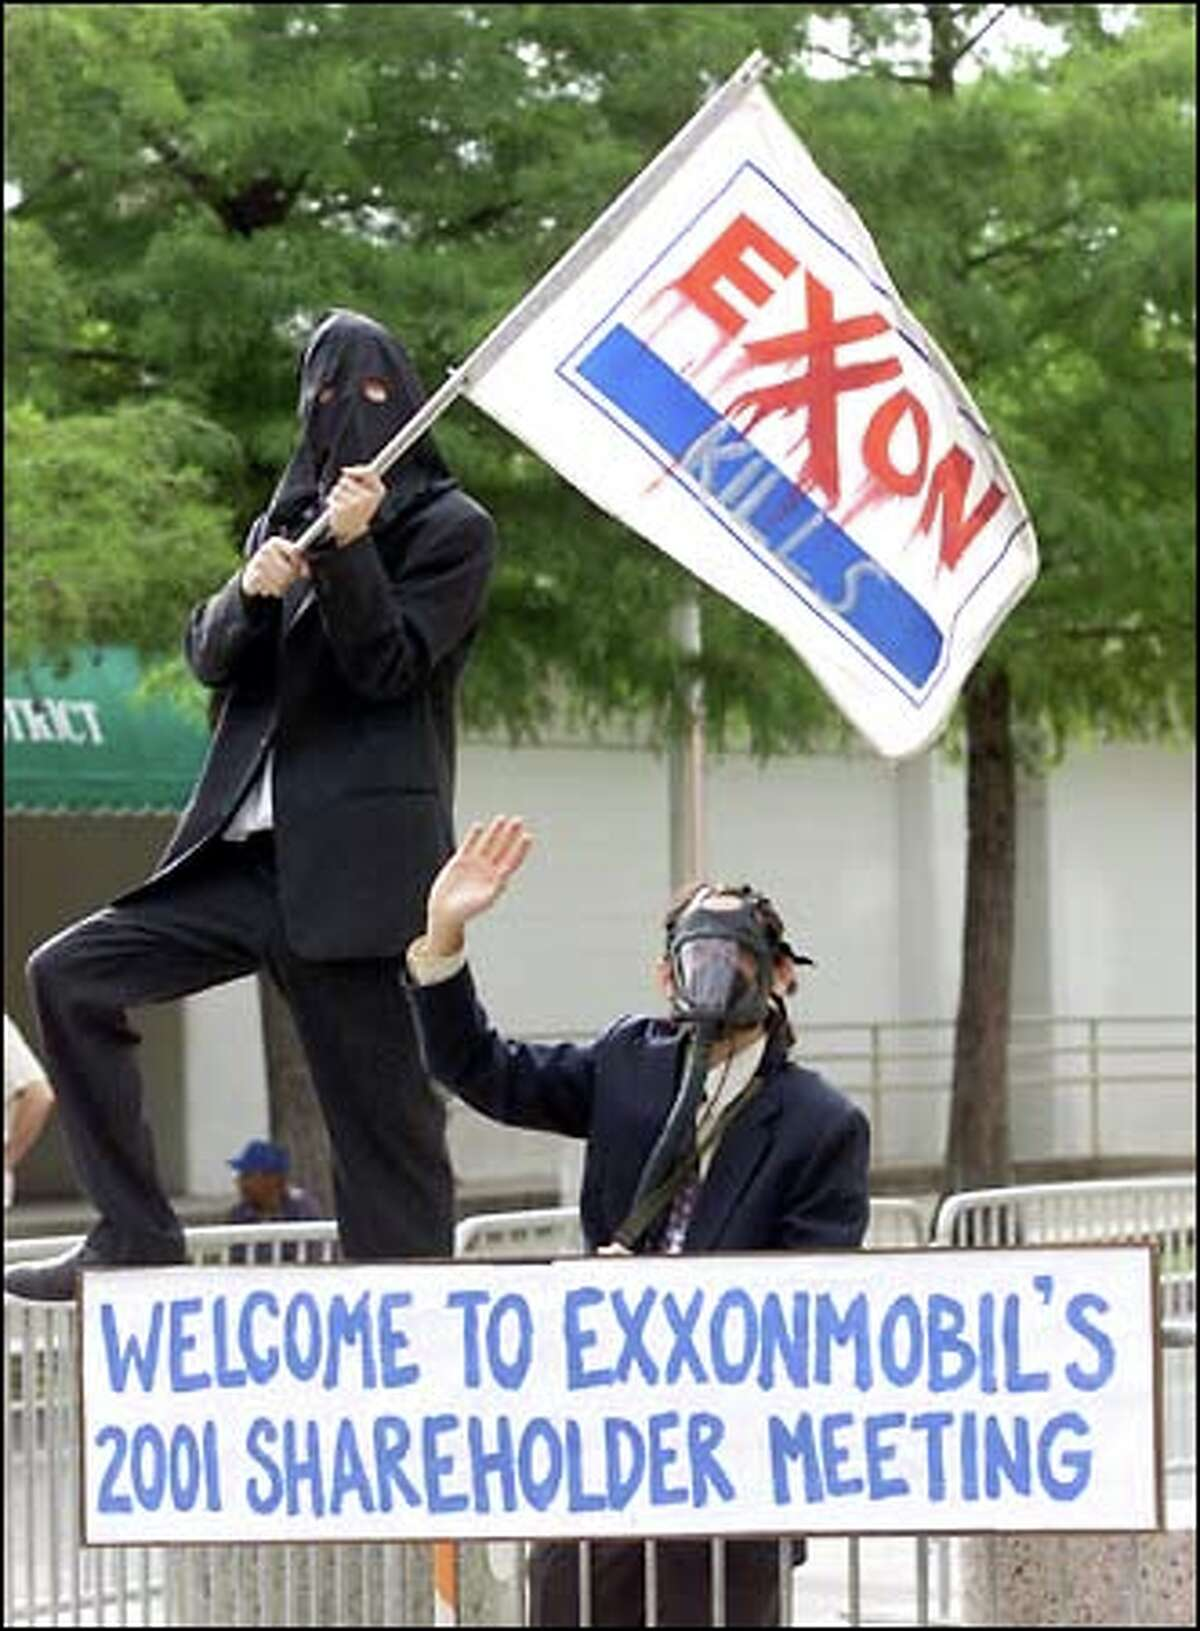 Protesters gather near the entrance to the Exxon Mobil shareholders meeting in Dallas. About 130 people showed up yesterday to demonstrate, calling for renewable energy sources and an end to work-place discrimination. At the meeting, Exxon Mobil shareholders voted to reconsider next year whether to amend company policy and ban discrimination based on sexual orientation. Shareholders voted against several other amendments, including promotion of wind, water and solar power, linking executive pay to the company's environmental and social record, and a proposal to prepare a report on the effect of drilling in the Arctic National Wildlife Refuge.